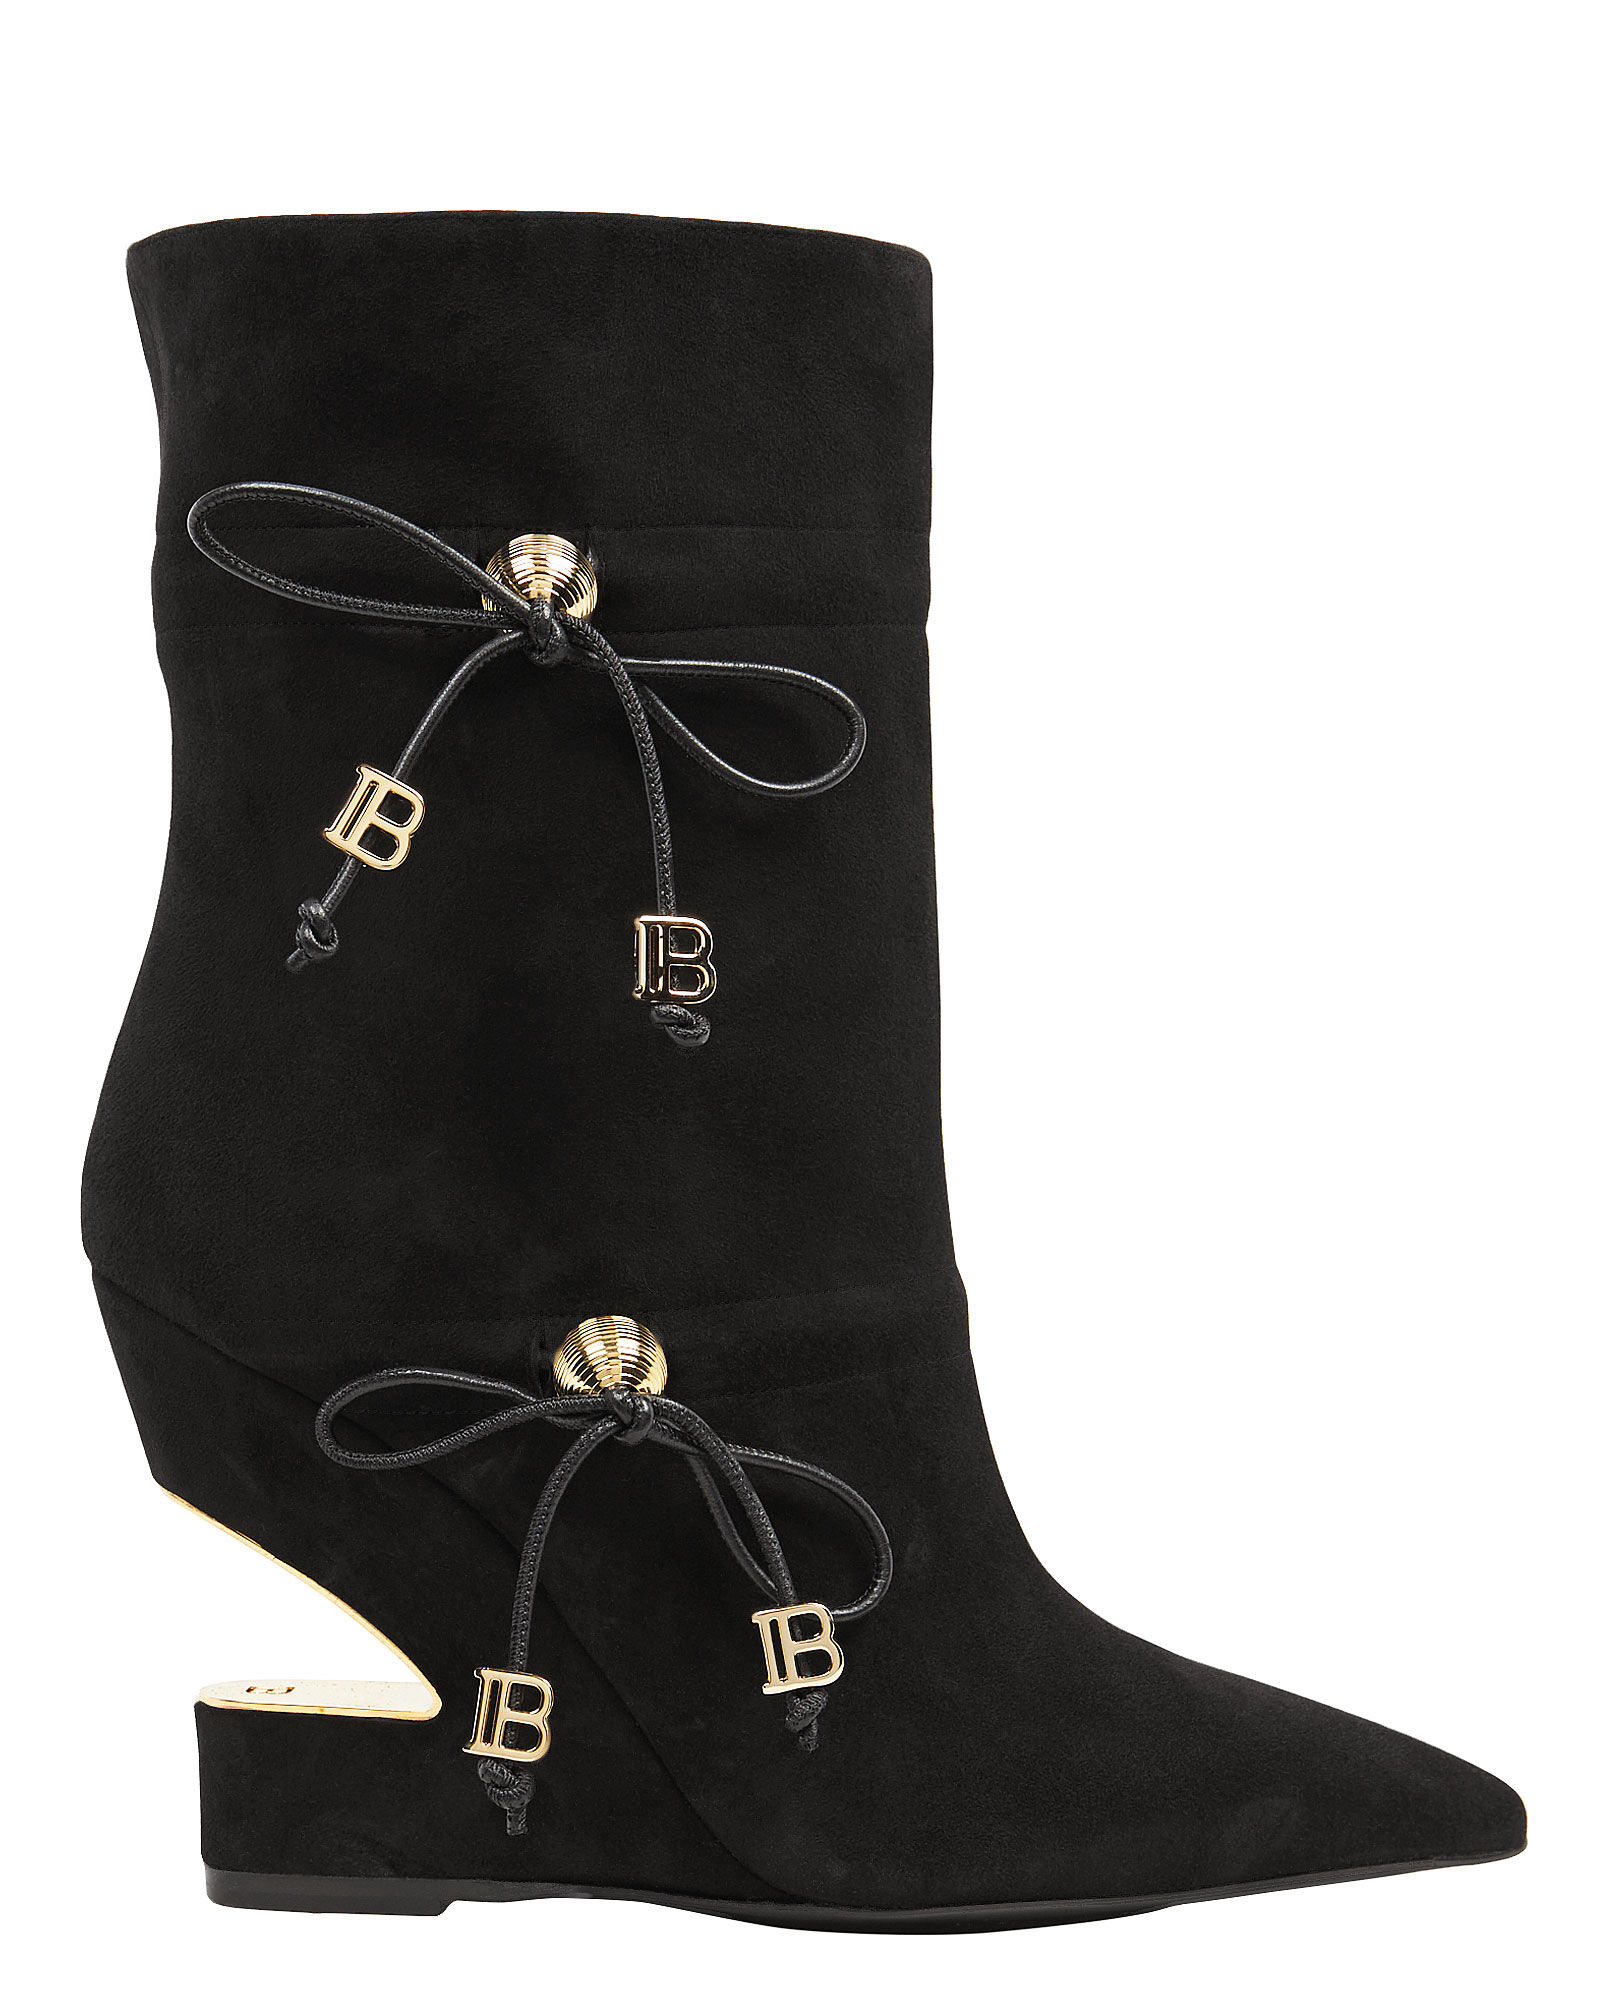 Maya Leather Cut-Out Booties, BLACK, hi-res